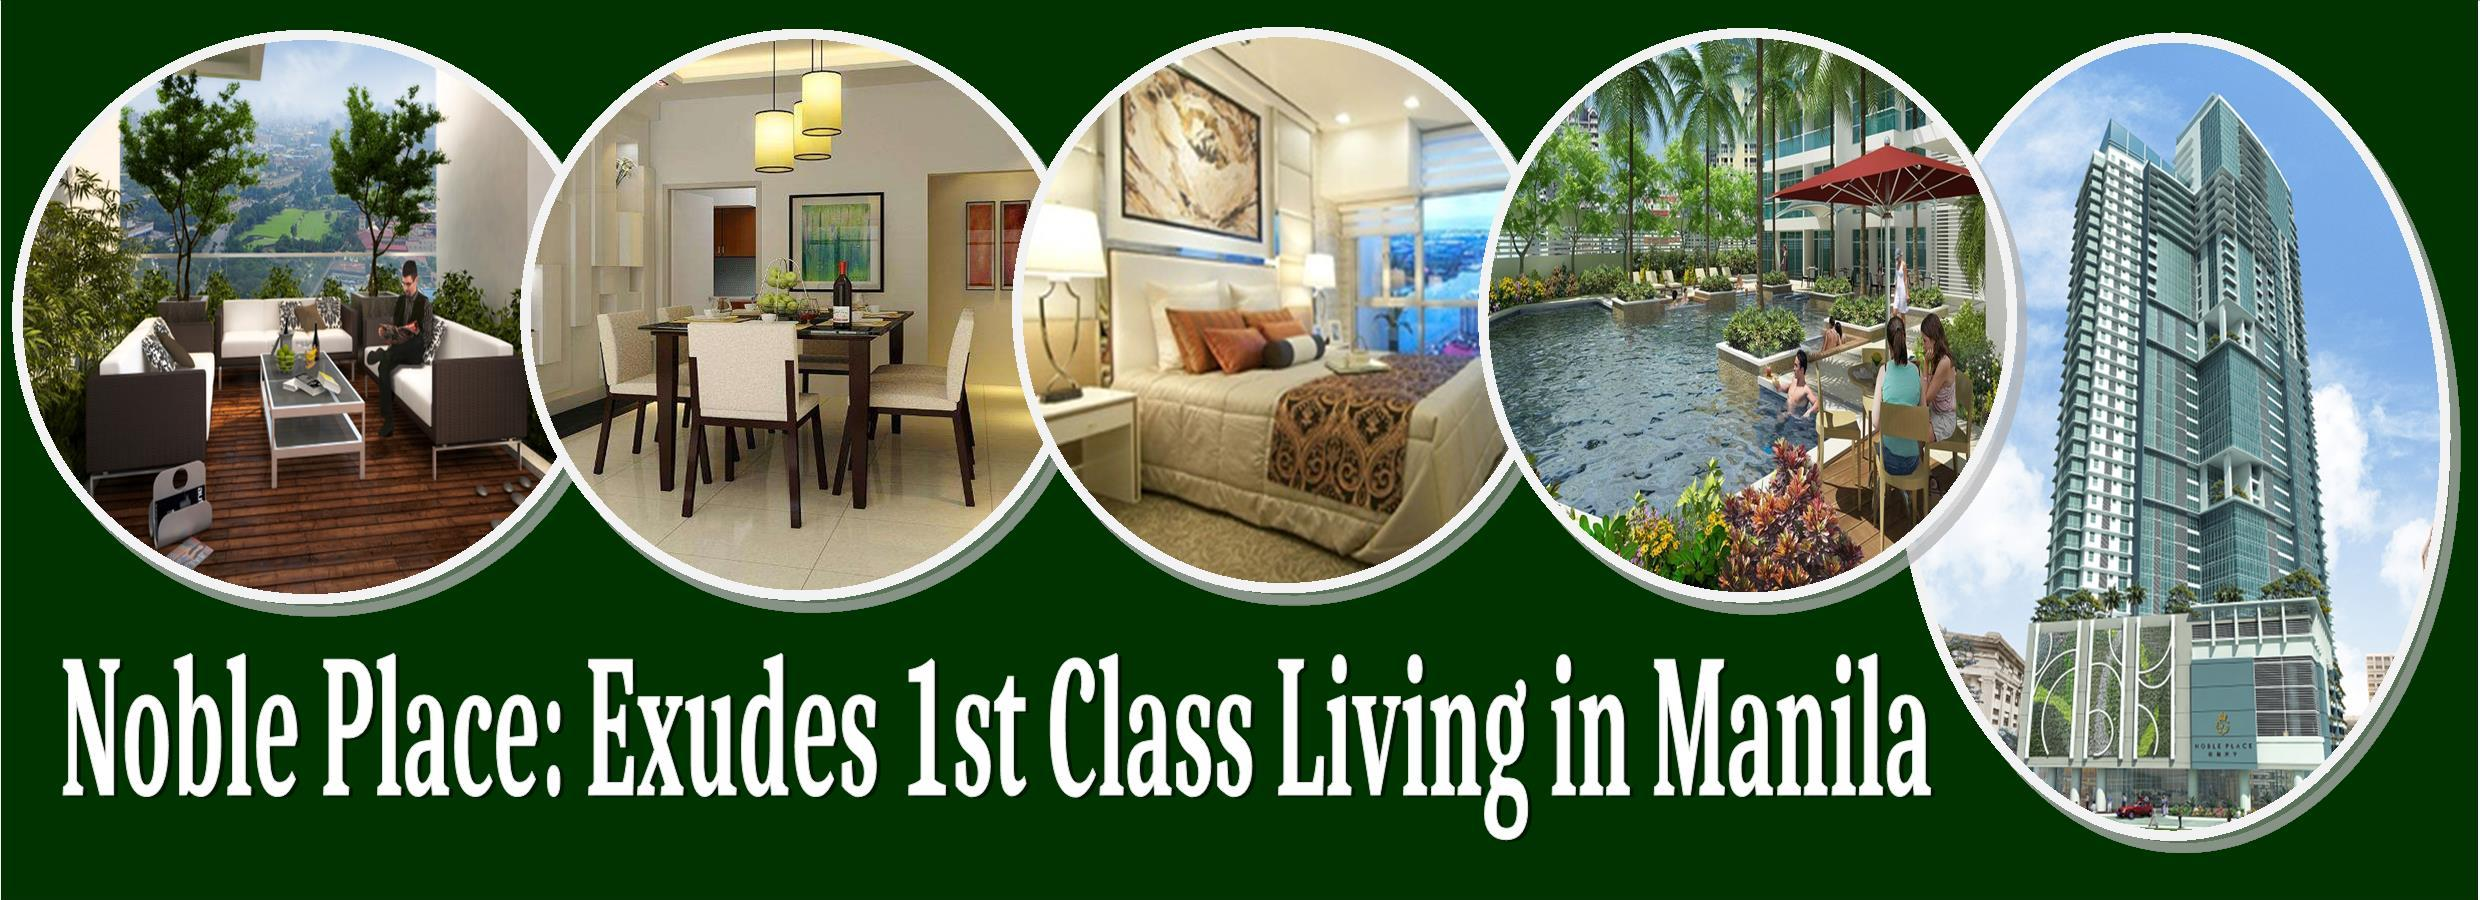 Noble Place Exudes 1st Class Living in Manila